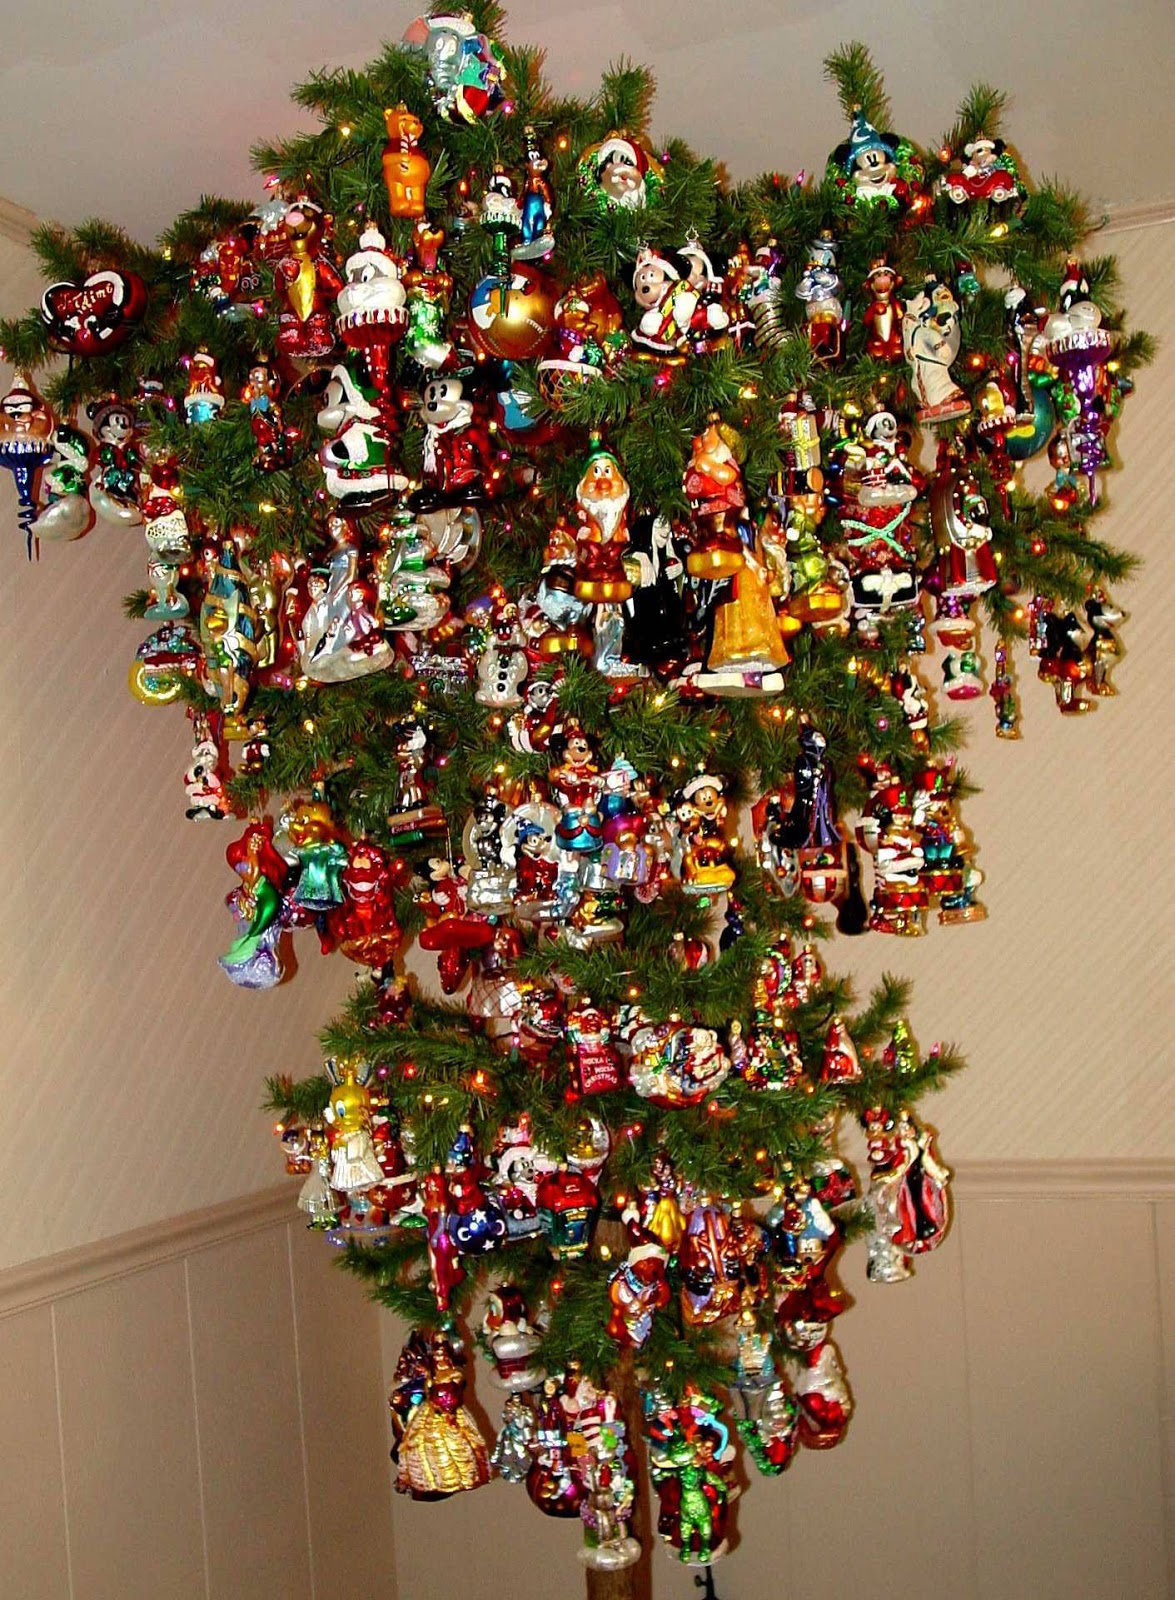 Meaning Of An Upside Down Christmas Tree Part - 49: And Of Course Thereu0027s Christmas Music Everywhere! Iu0027ve Never Quite  Understood Why Annoying Seasonal Jingles Have To Be Played From Early  December Onwards.